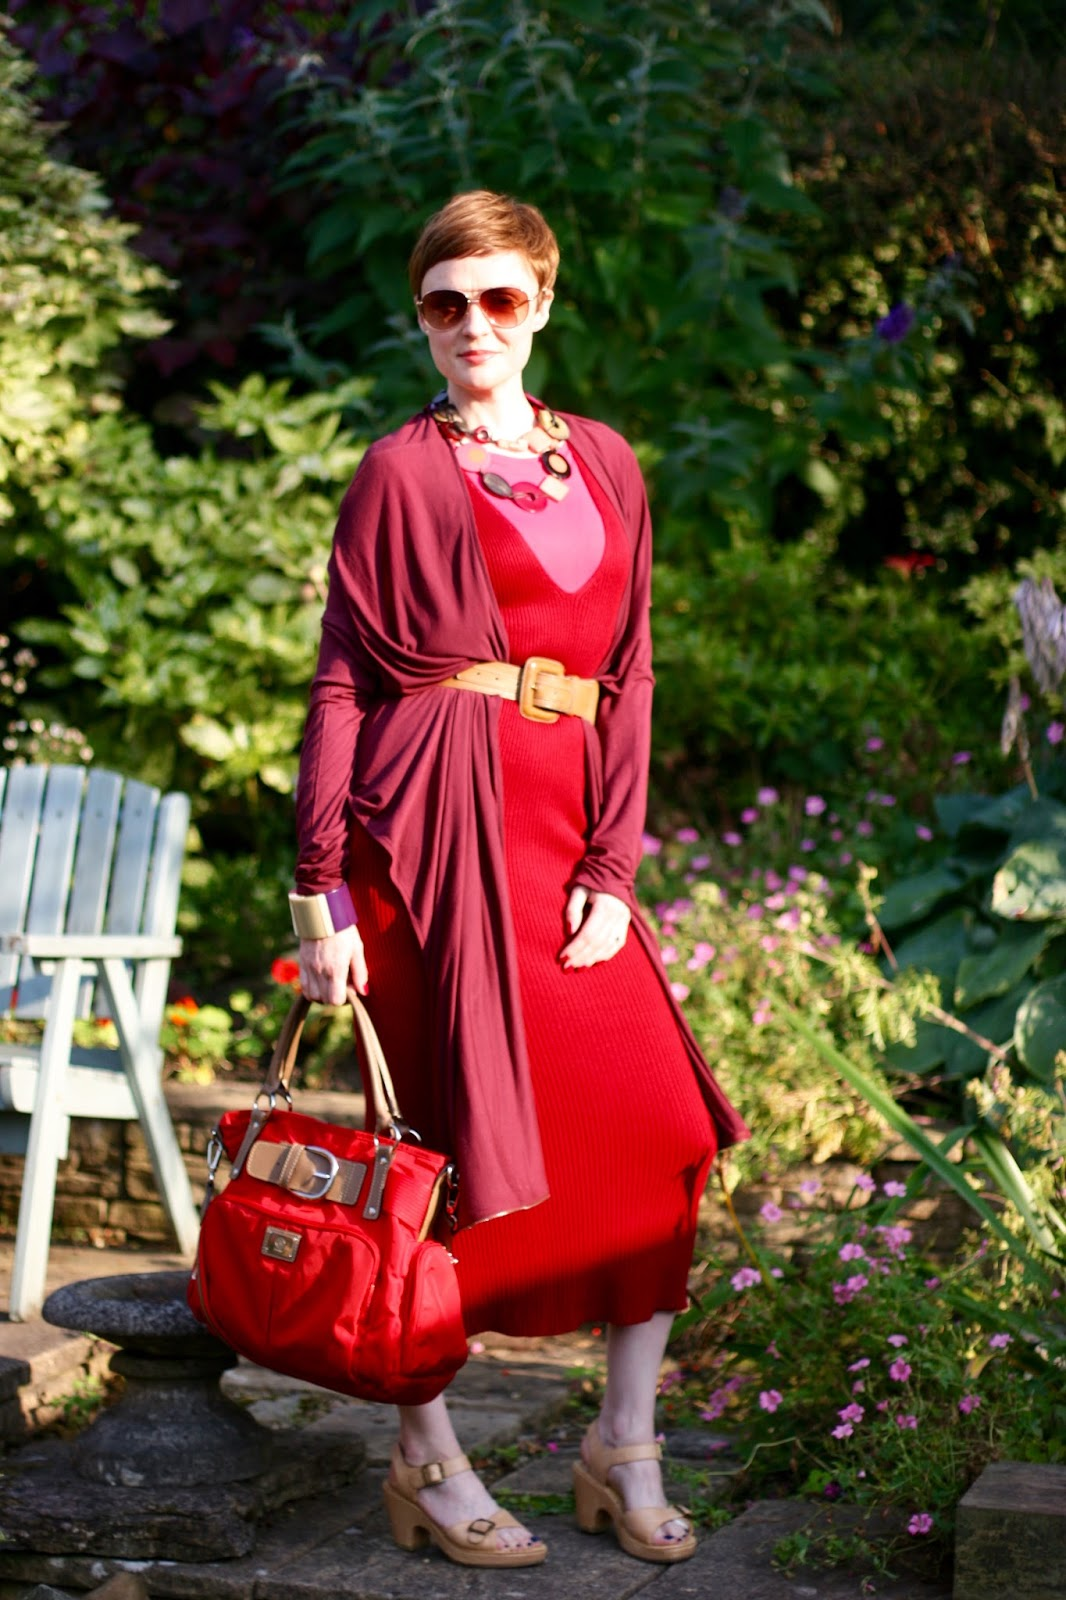 AW15 Wearing red and pink head to toe, layering.